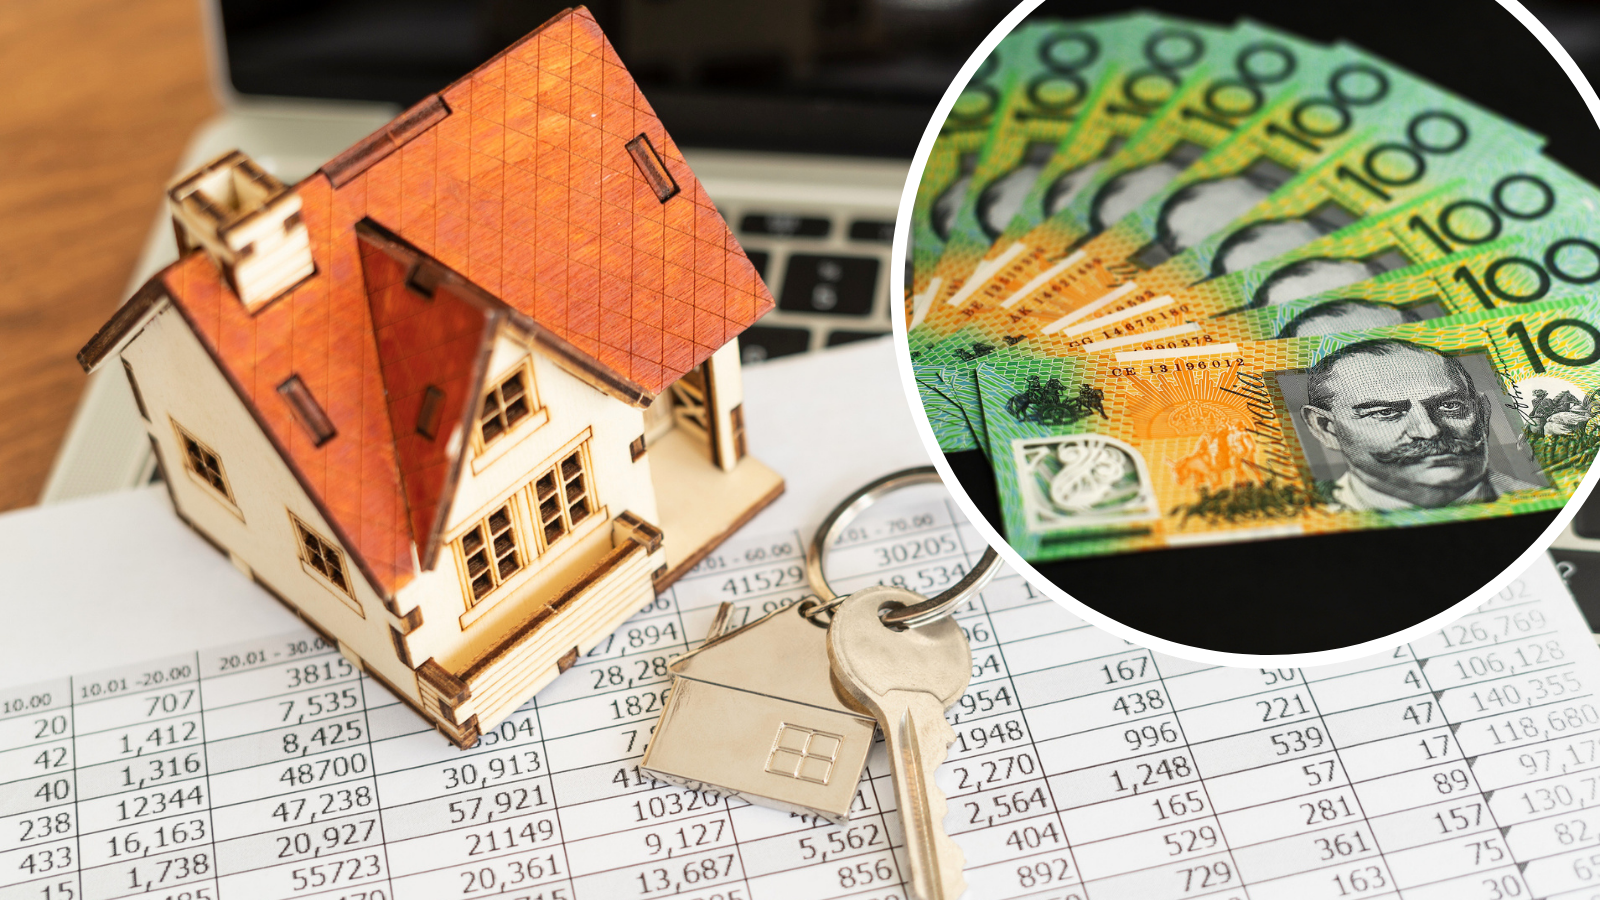 Revealed: The 6 top (and cheapest) mortgages for investors